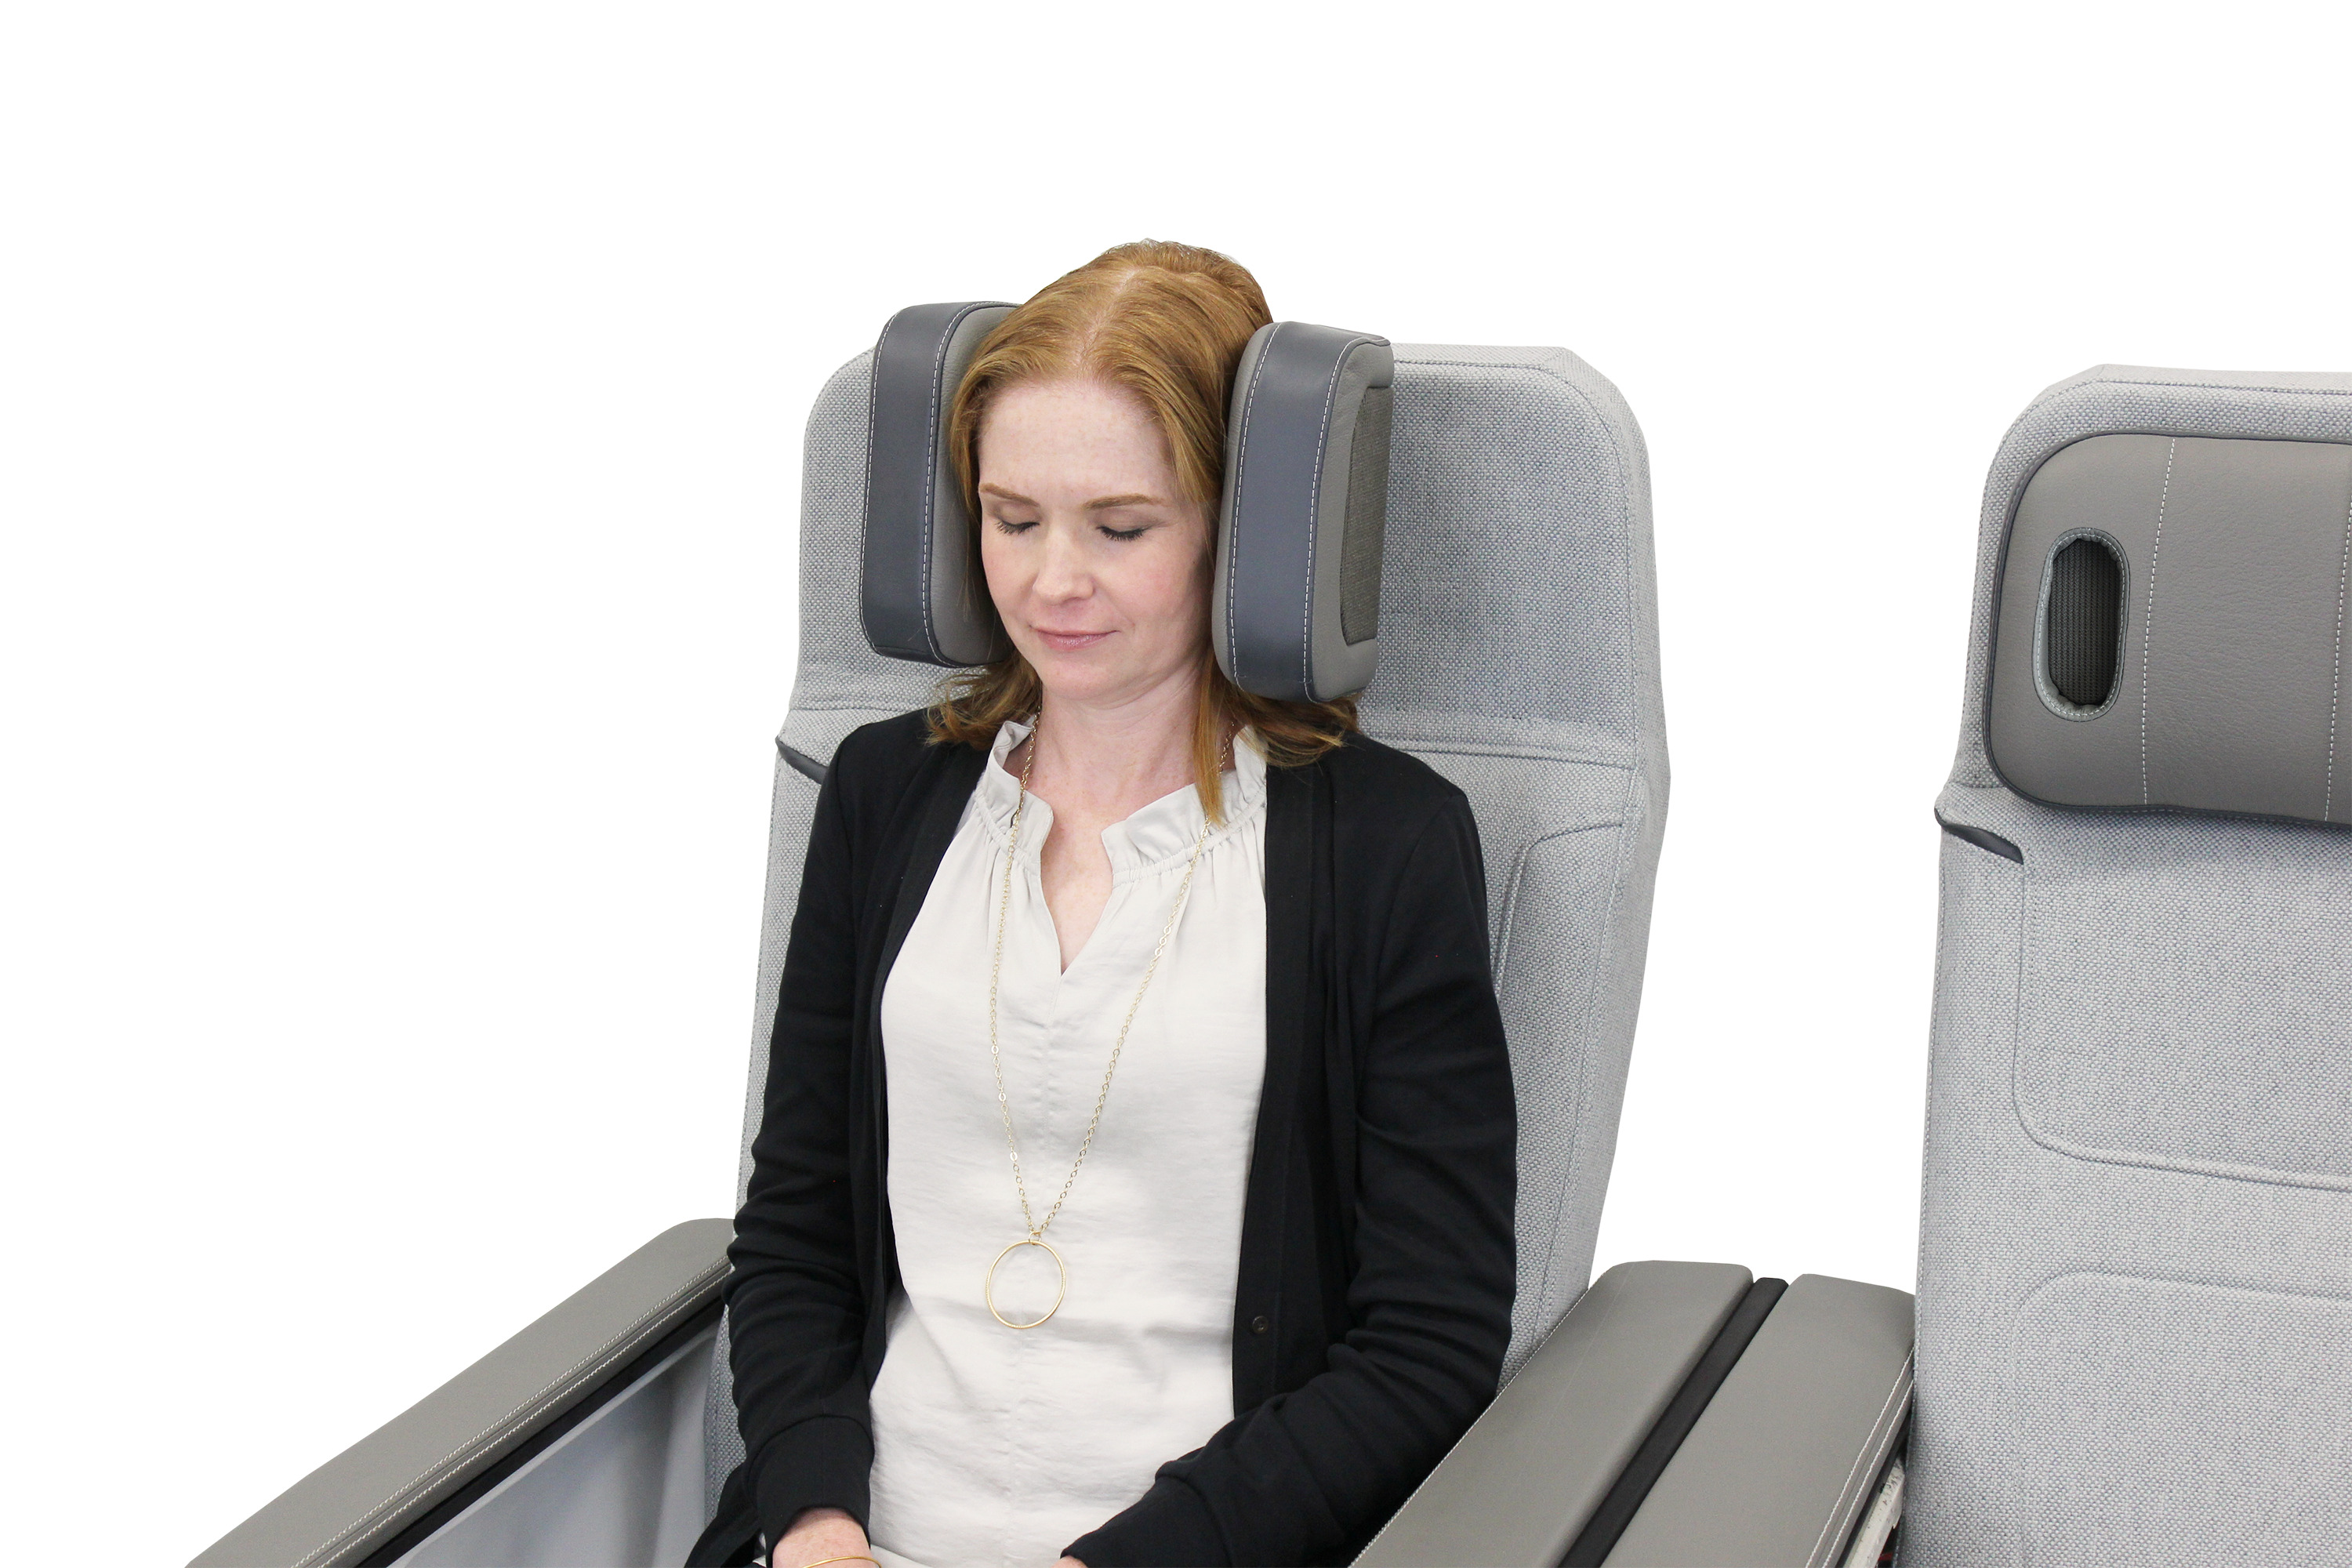 Haeco's noise cancelling headrests that wrap around the ears.